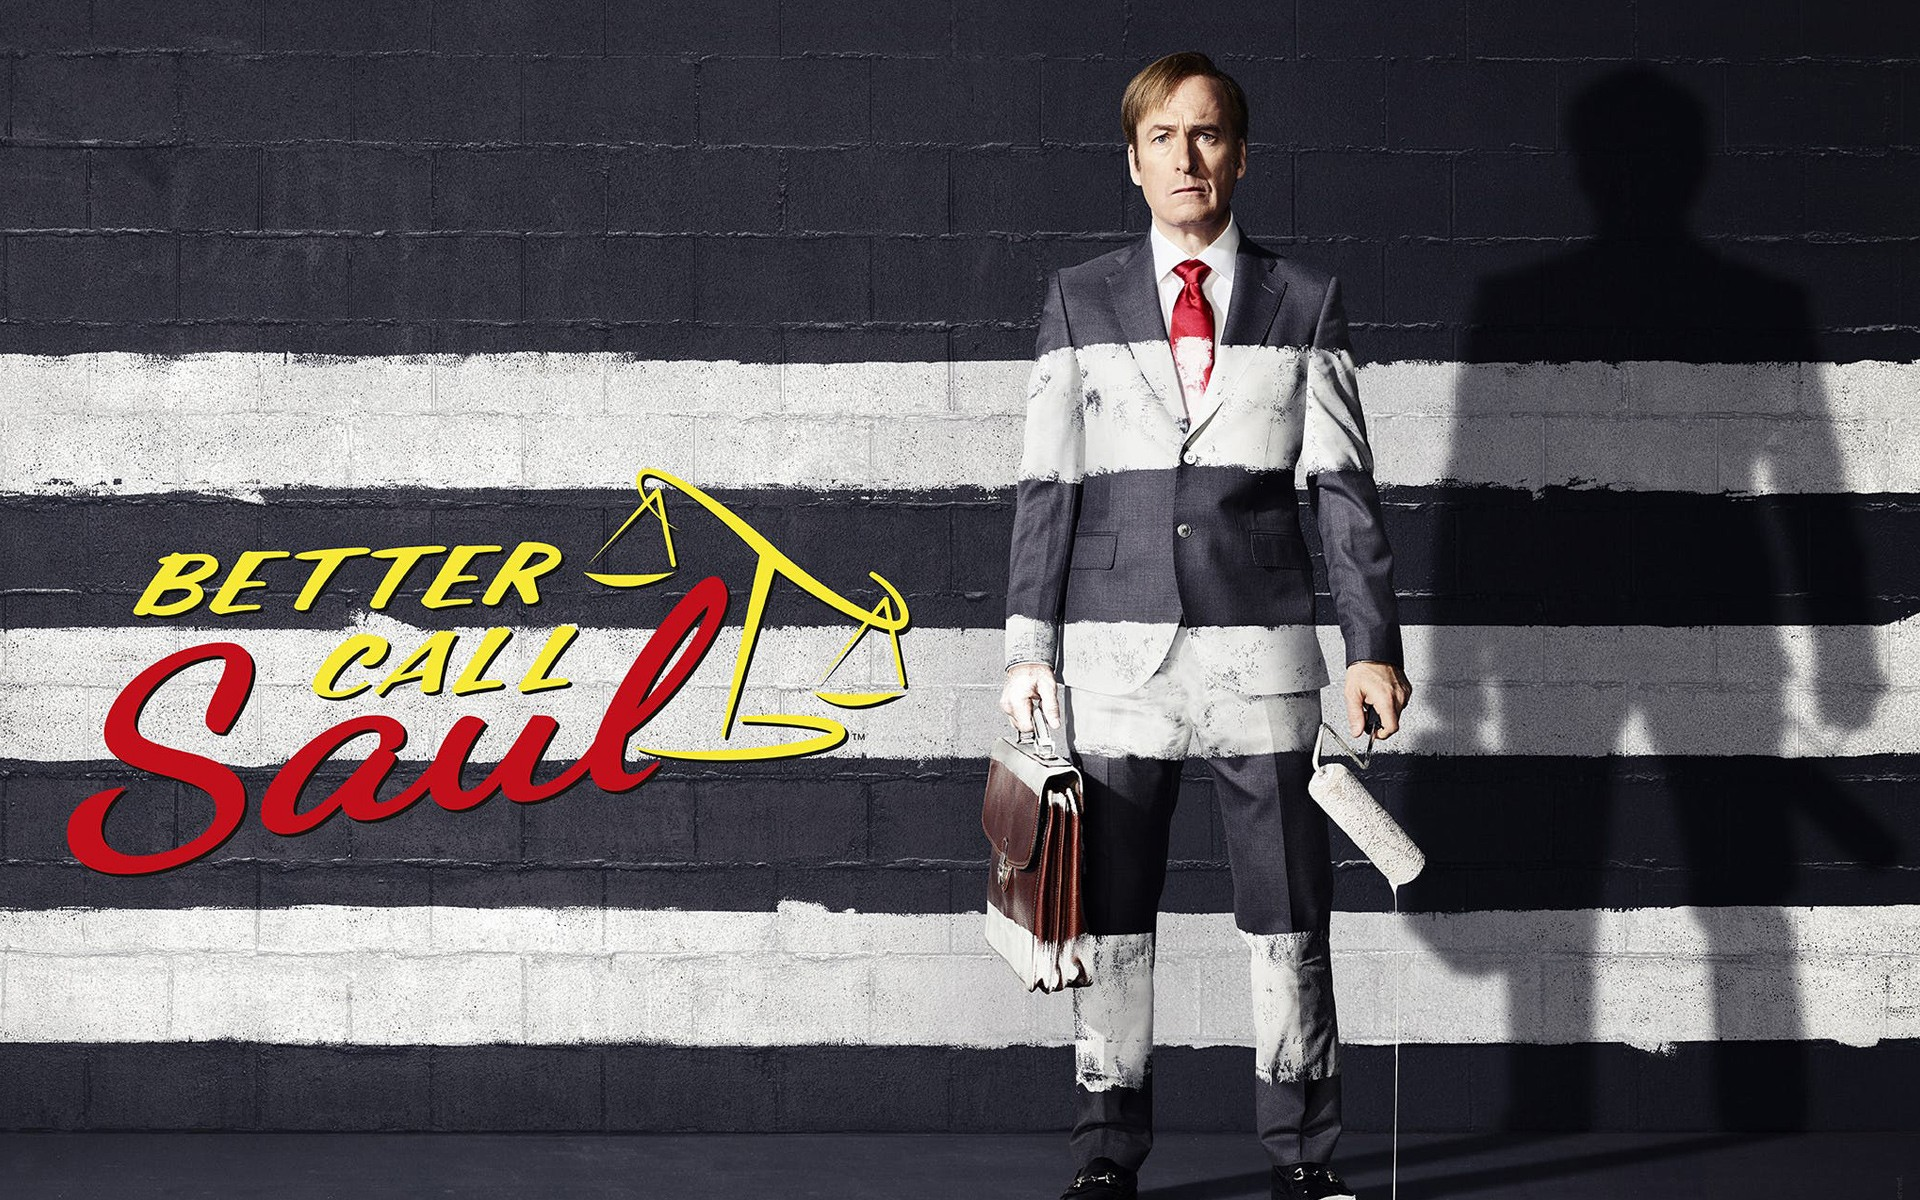 Iphone X Fornite Wallpapers Better Call Saul Season 3 2017 Wallpapers Hd Wallpapers